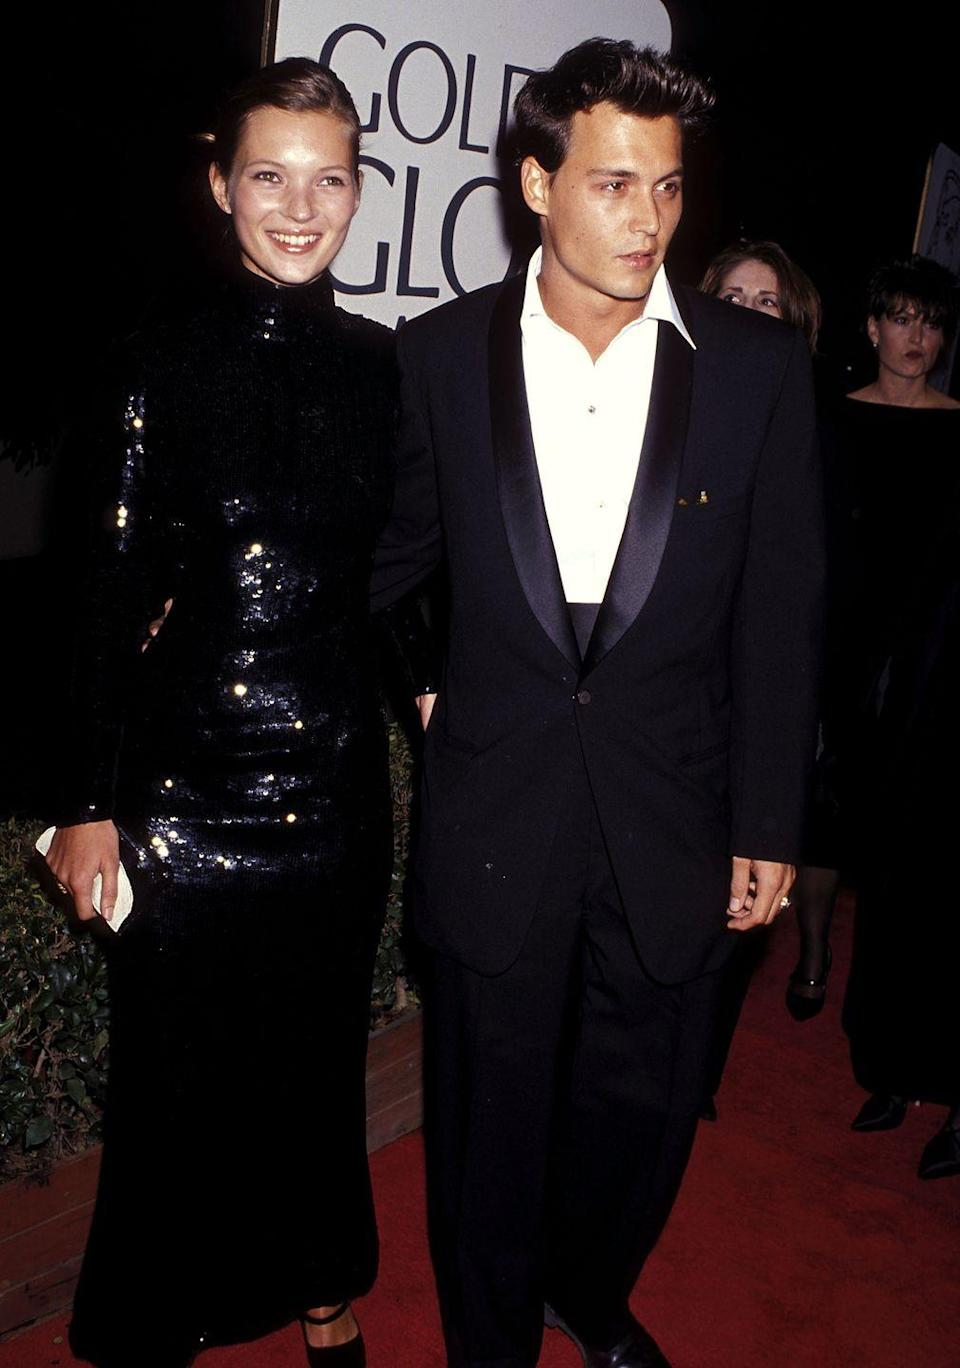 <p>Kate Moss exemplified elegance in a sparkly mock-neck dress, which she wore on the red carpet in 1995. </p>